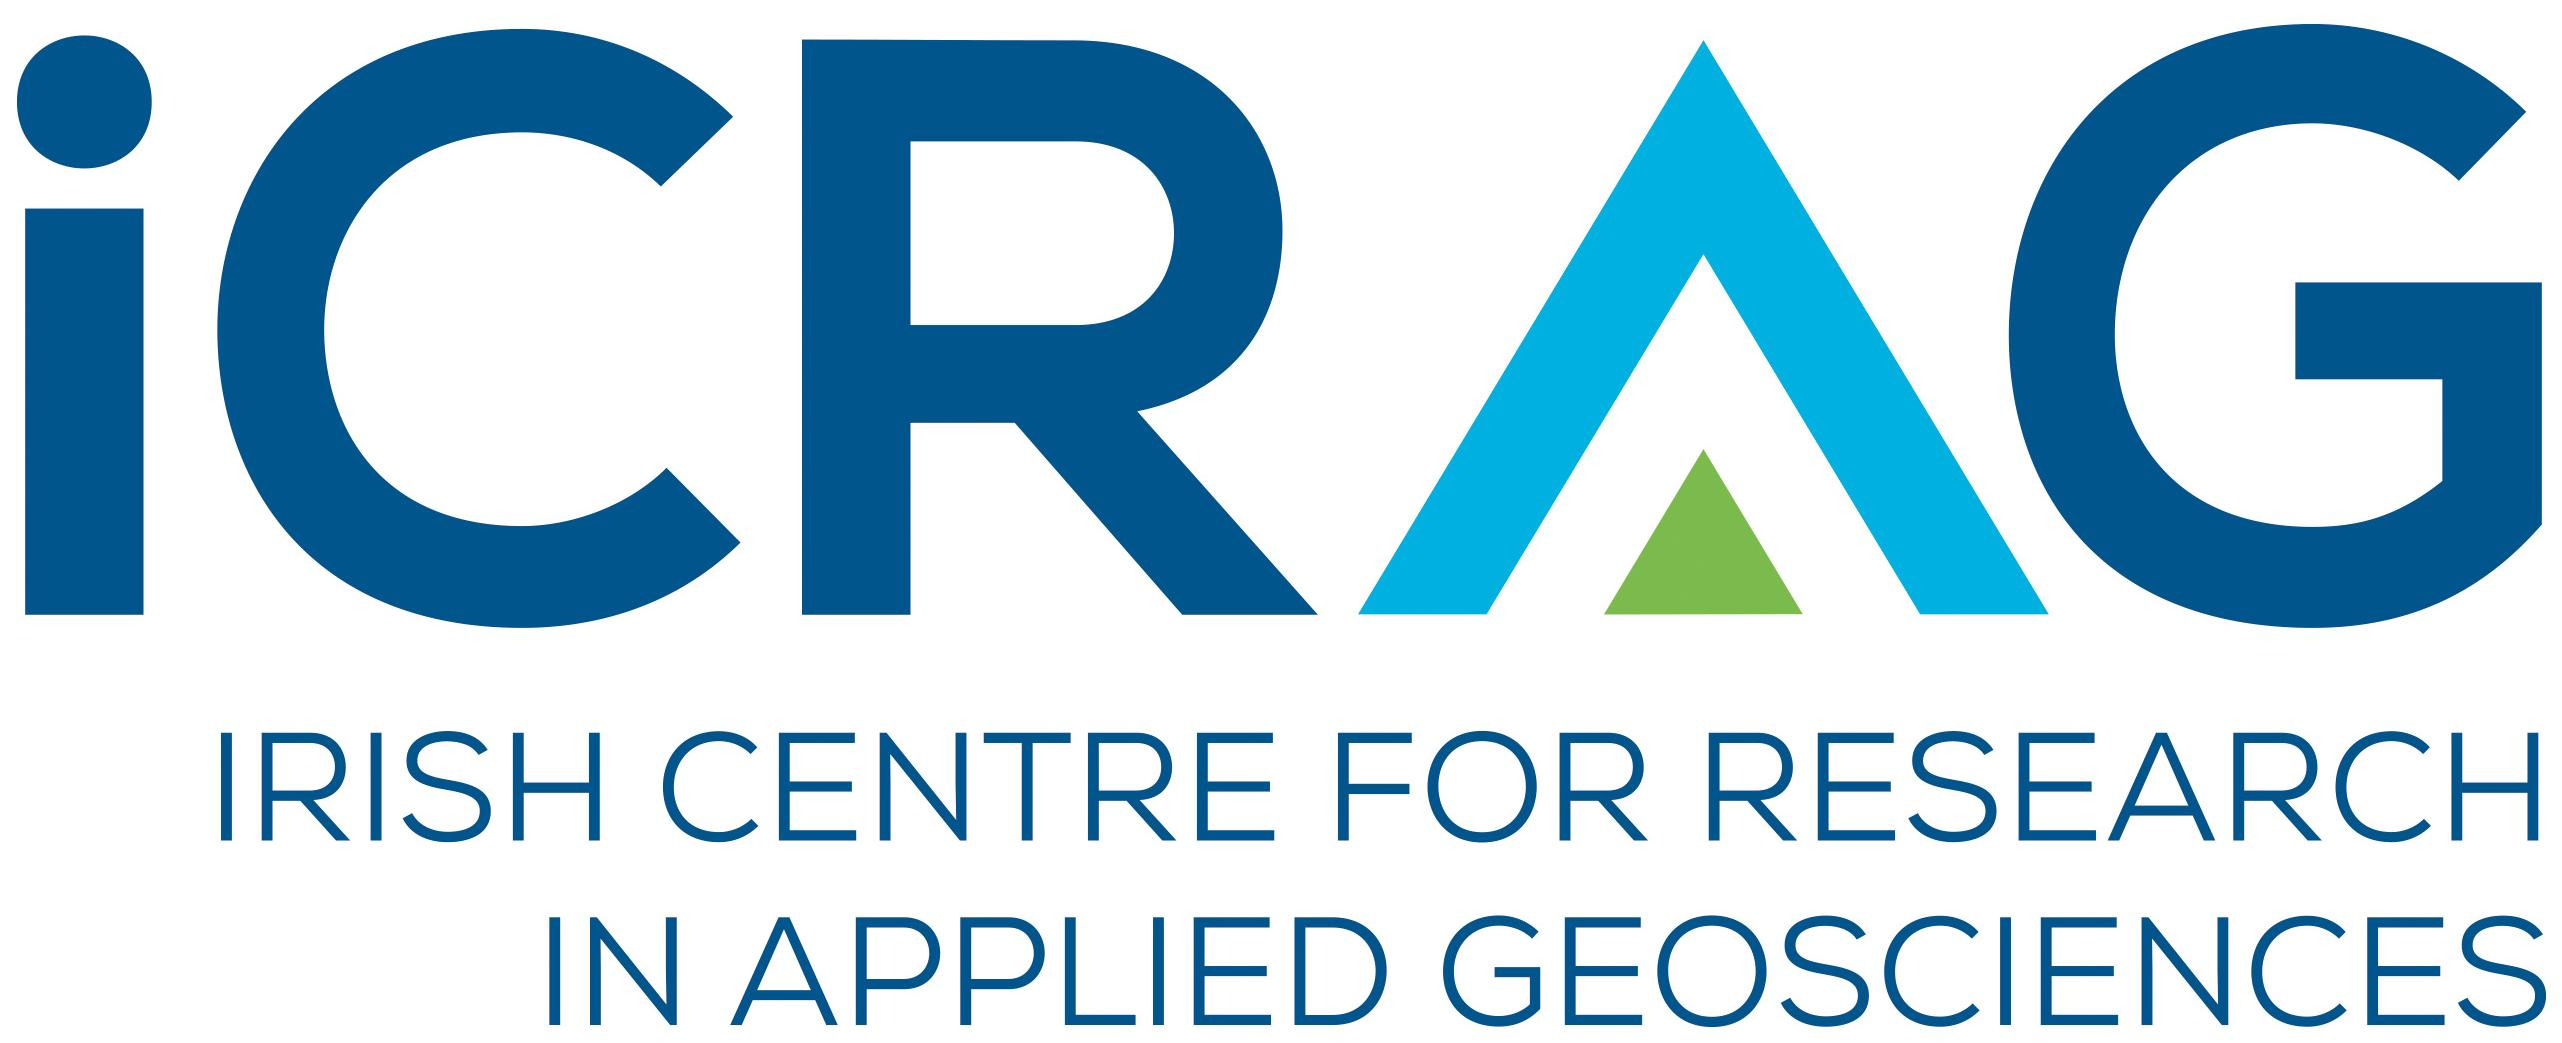 Irish Centre for Research in Applied Geosciences